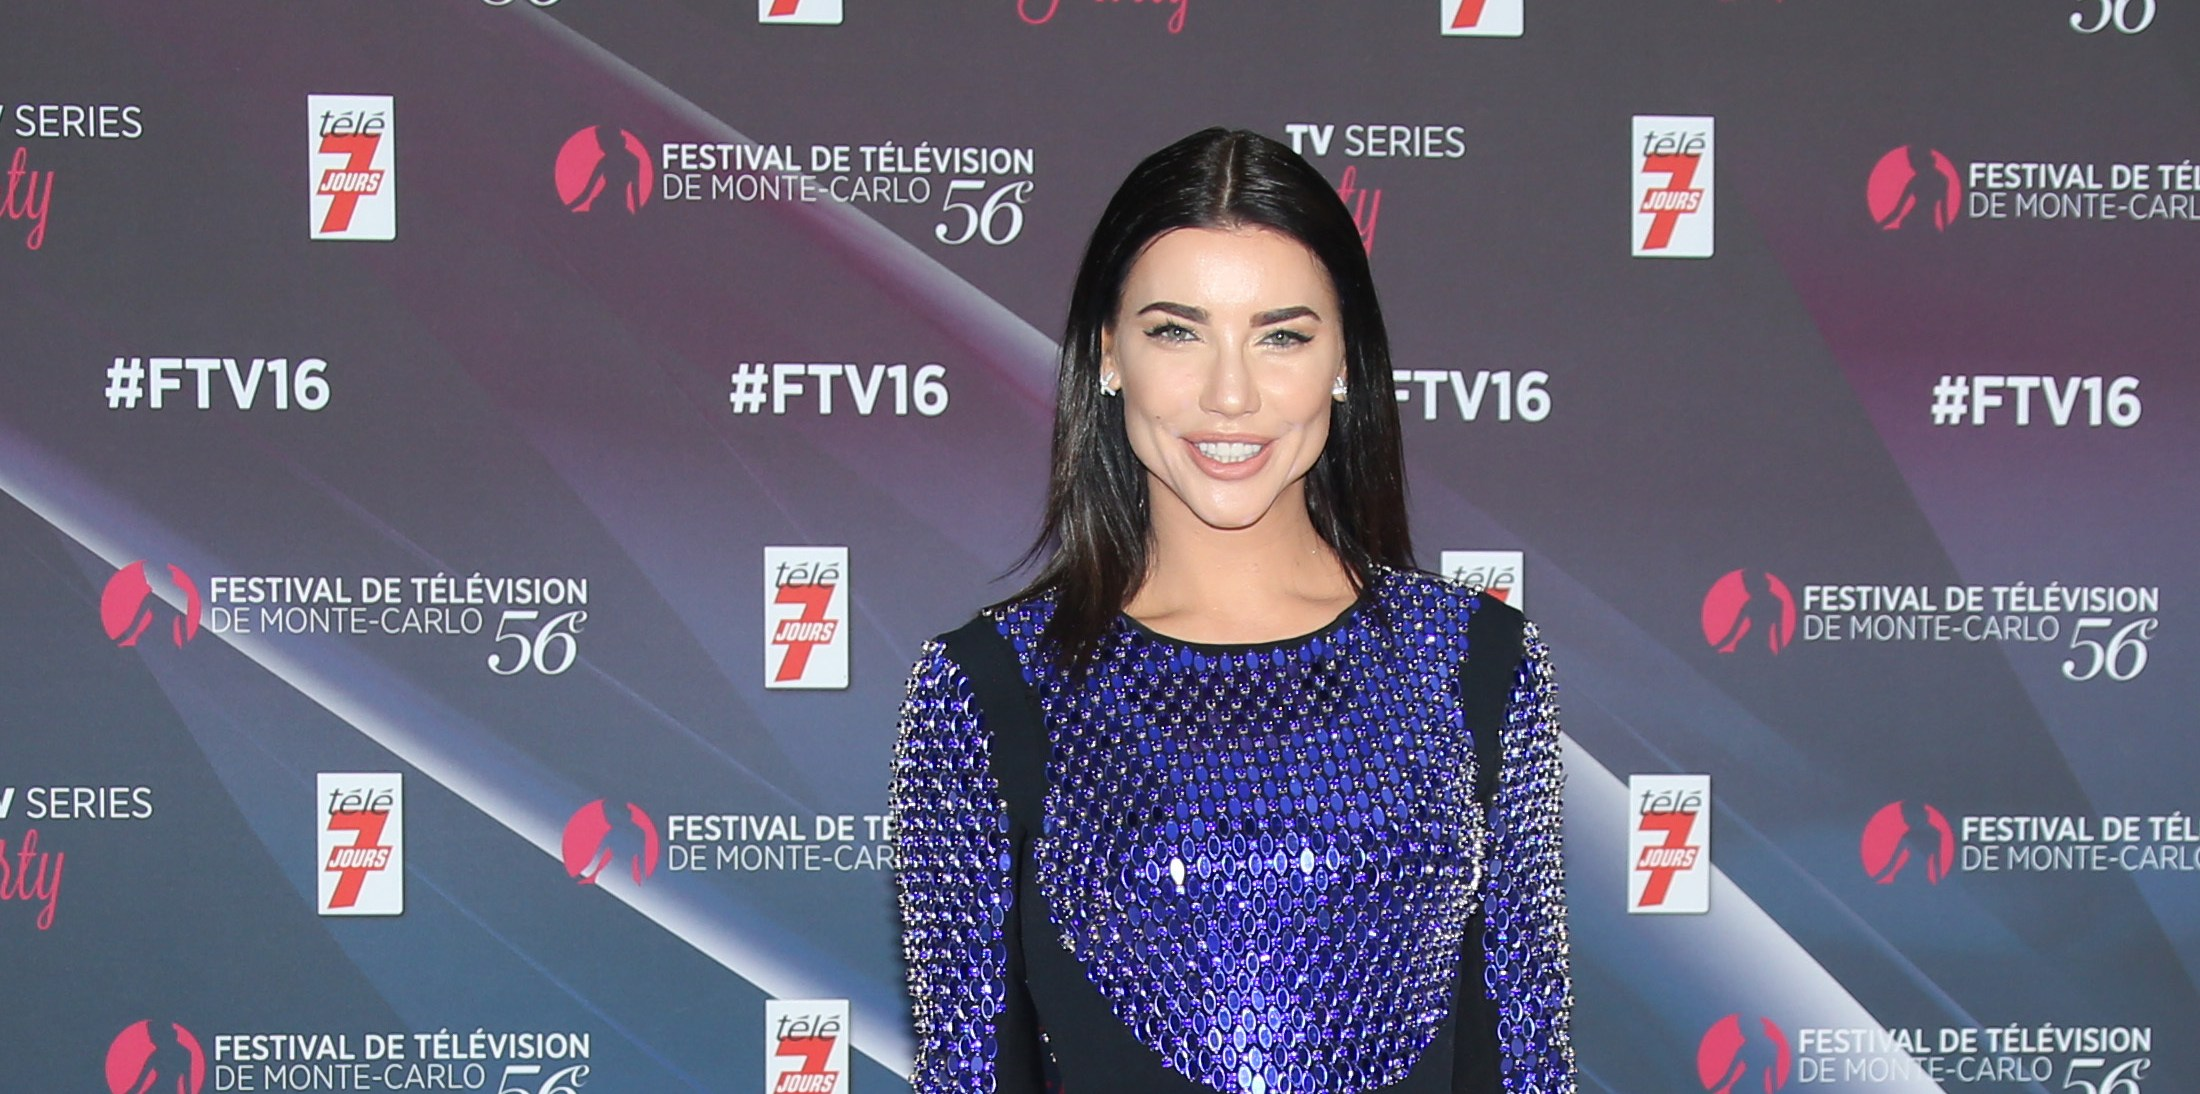 Jacqueline MacInnes Wood TV Series Party held at Monte Carlo Bay Resort during the 56th Annual Monte Carlo Television Fest in Monaco on June 13, 2016 6/13/16 © D Guignebourg/jpistudios.com 310-657-9661 *** WORLD RIGHTS EXCEPT FRANCE *****